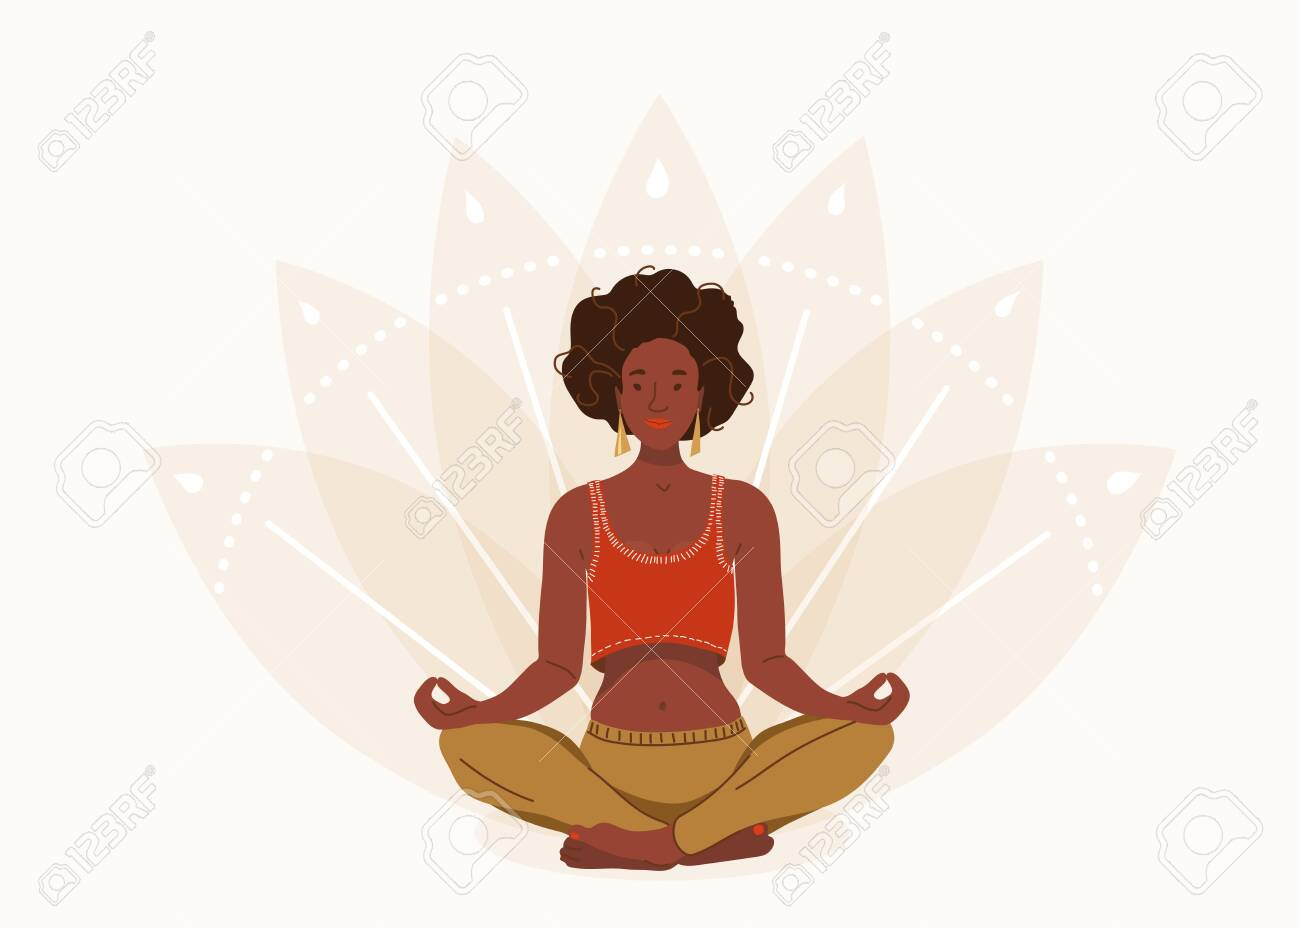 African Young Woman Sitting In Yoga Lotus Pose Happy Relaxed Royalty Free Cliparts Vectors And Stock Illustration Image 143766457